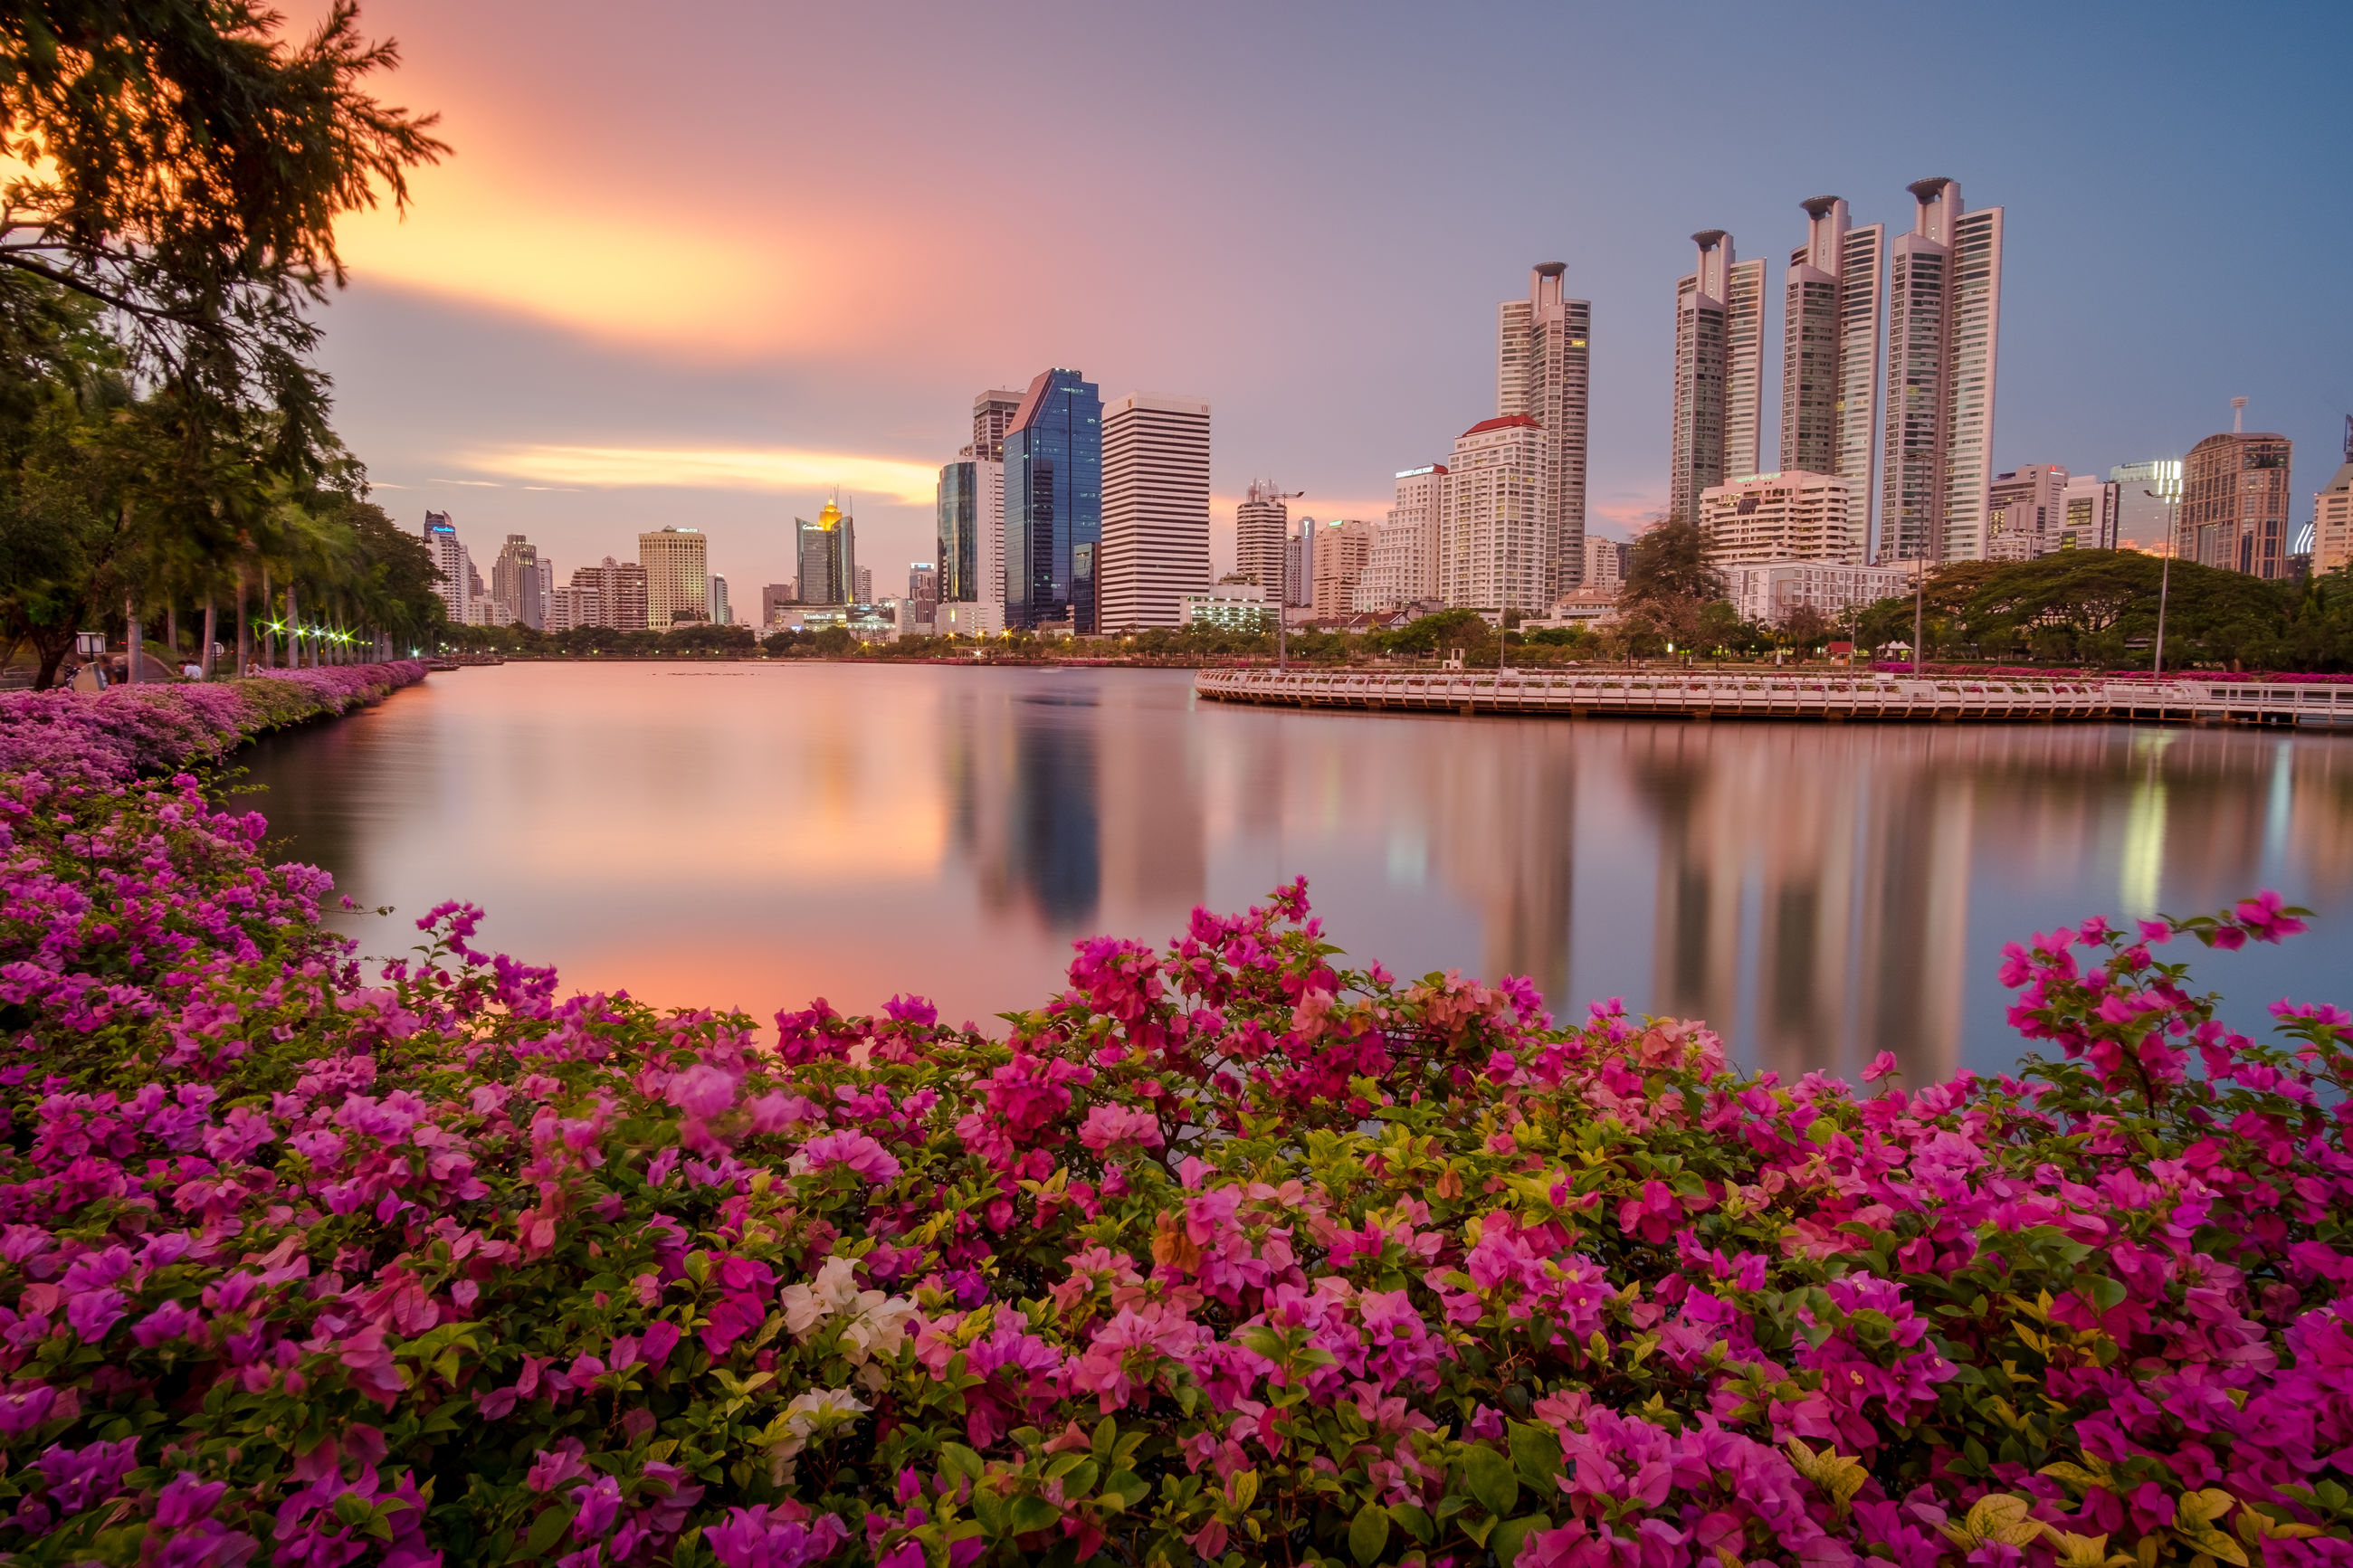 reflection, building exterior, city, architecture, water, sunset, modern, skyscraper, built structure, travel destinations, cityscape, sky, no people, river, outdoors, urban skyline, tree, nature, day